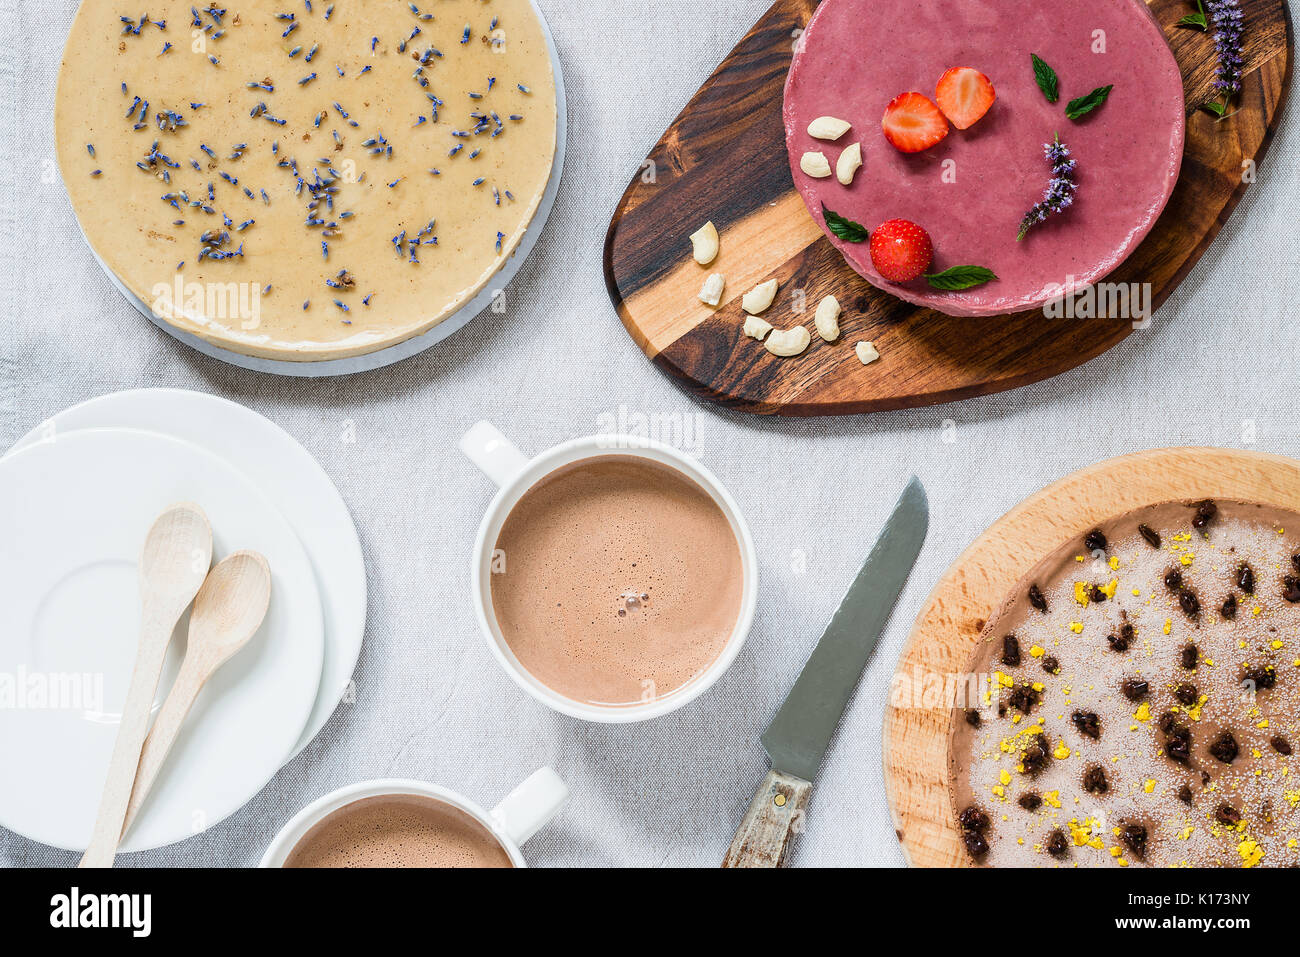 Different raw healthy cheesecakes, homemade with lavender, mint and strawberries. Breakfast table with hot drink. Top view - Stock Image